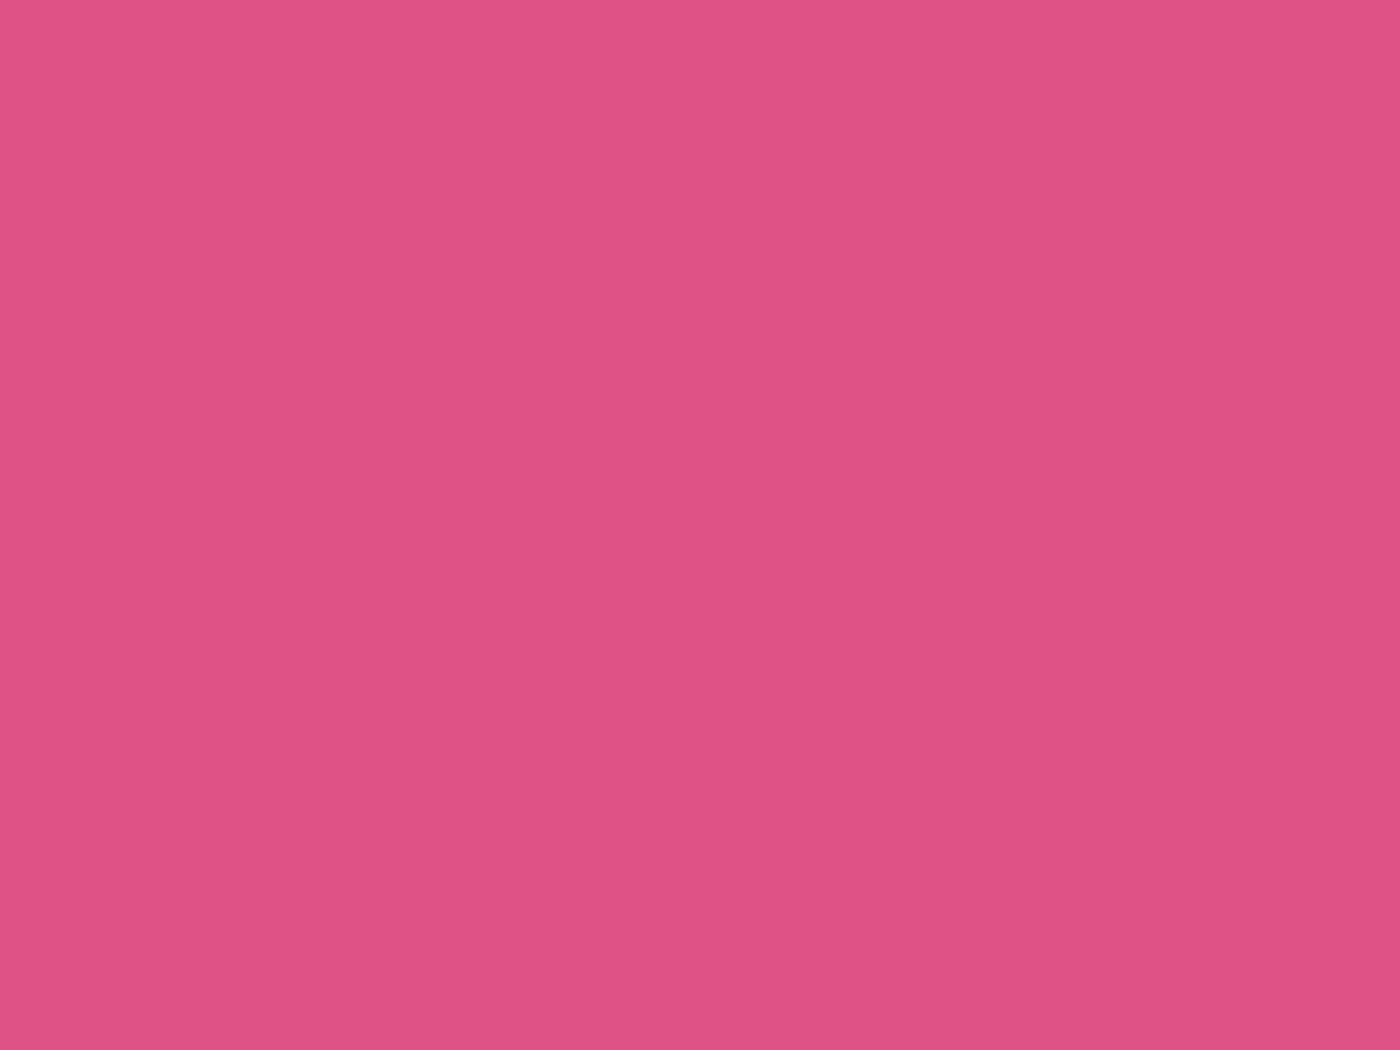 1400x1050 Fandango Pink Solid Color Background